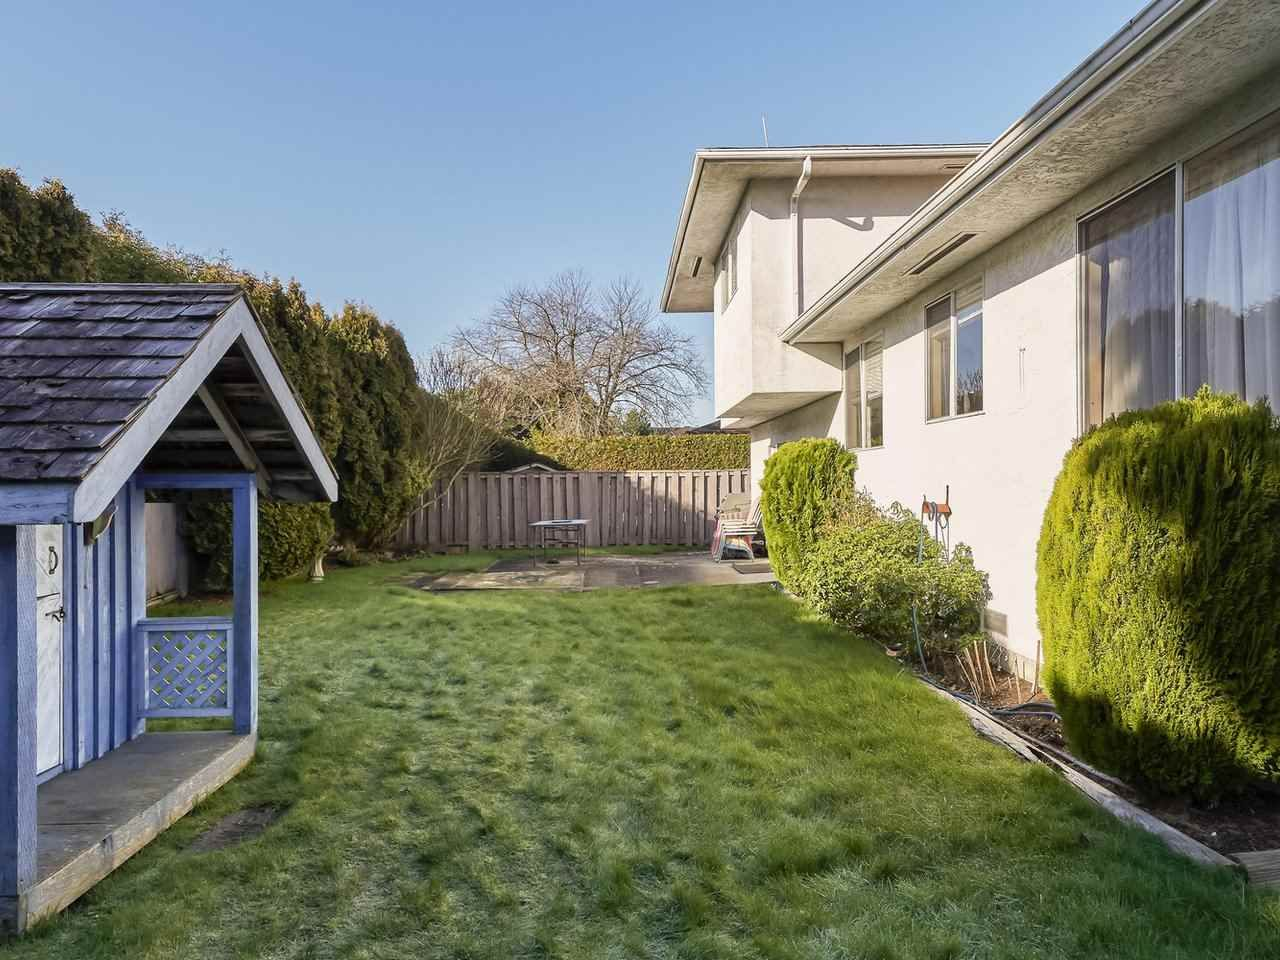 Photo 5: Photos: 4880 FORTUNE AVENUE in Richmond: Steveston North House for sale : MLS®# R2435063